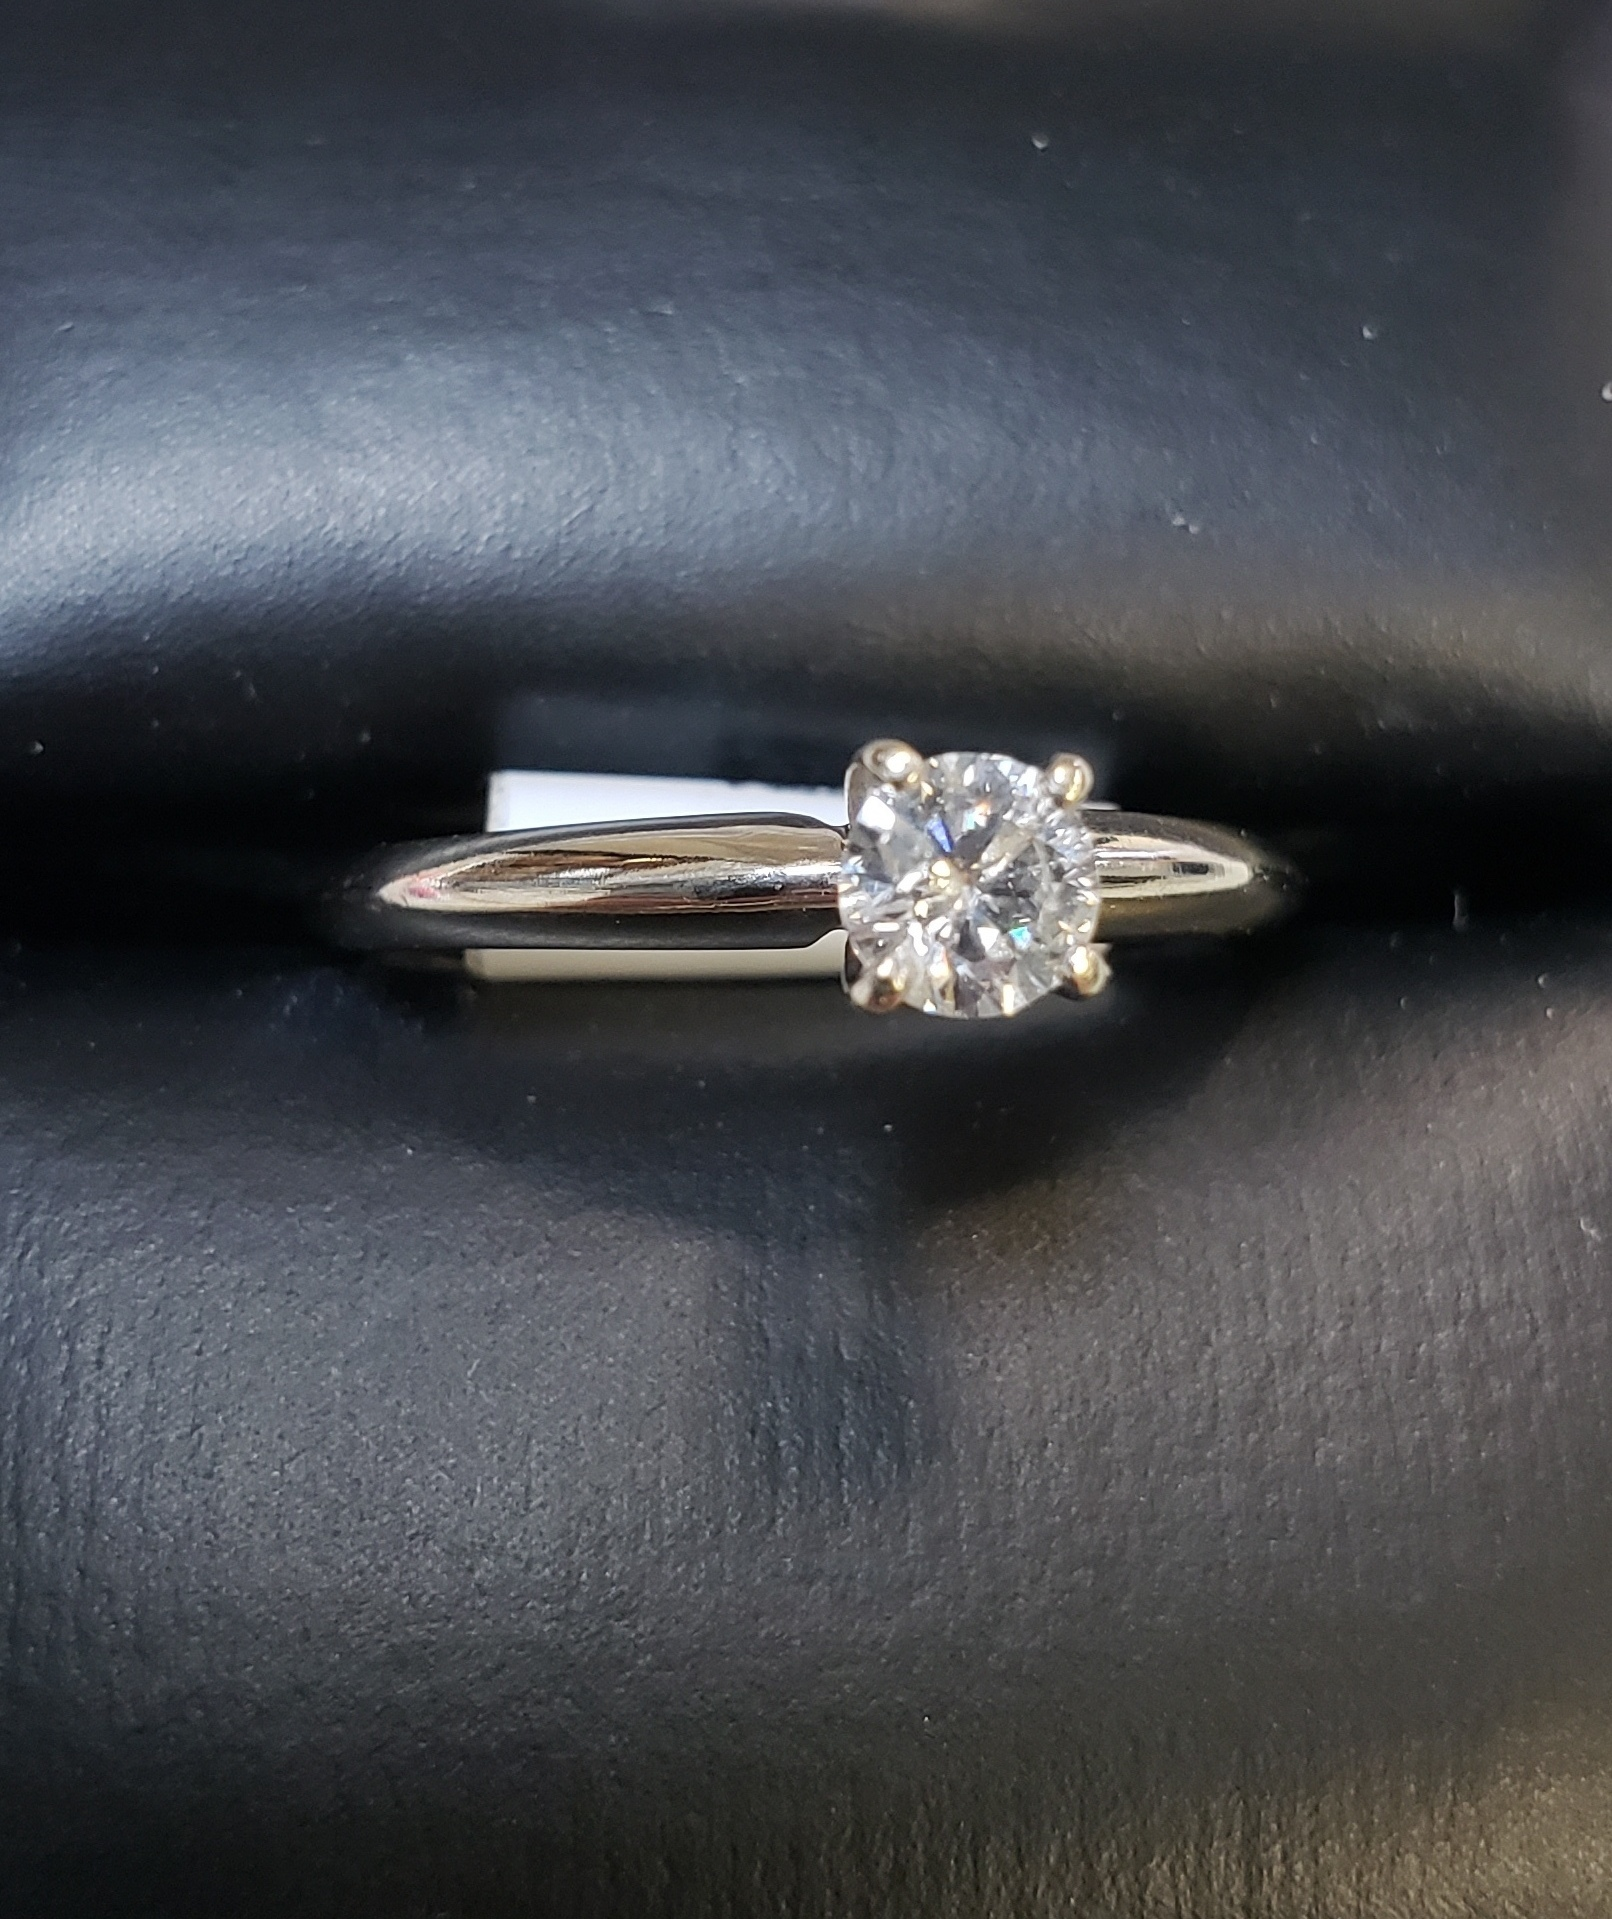 14KT - WHITE GOLD - SIZE 7.5 - APPROXIMATELY 1/4 CTW SOLITAIRE DIAMOND RING